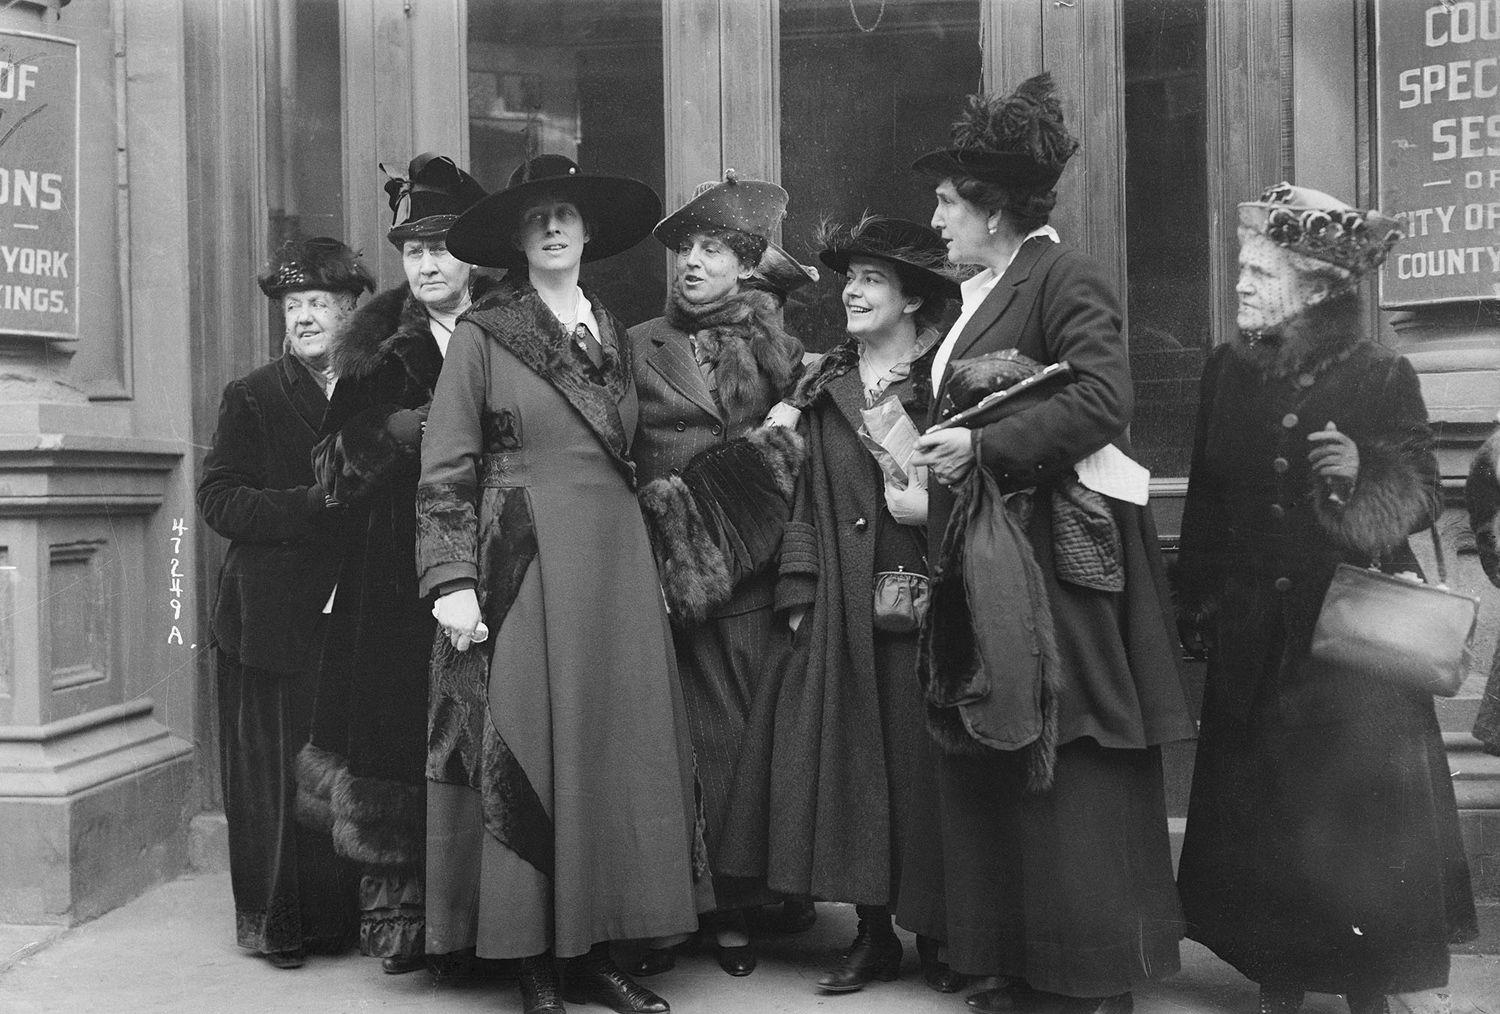 Mrs. Amos Pinchot and other women outside the Court of Special Sessions, in Brooklyn, during the trial of Margaret Sanger, indicted for her teachings on birth control. Sanger was instrumental in organizing groups that would later become what we know today as Planned Parenthood.